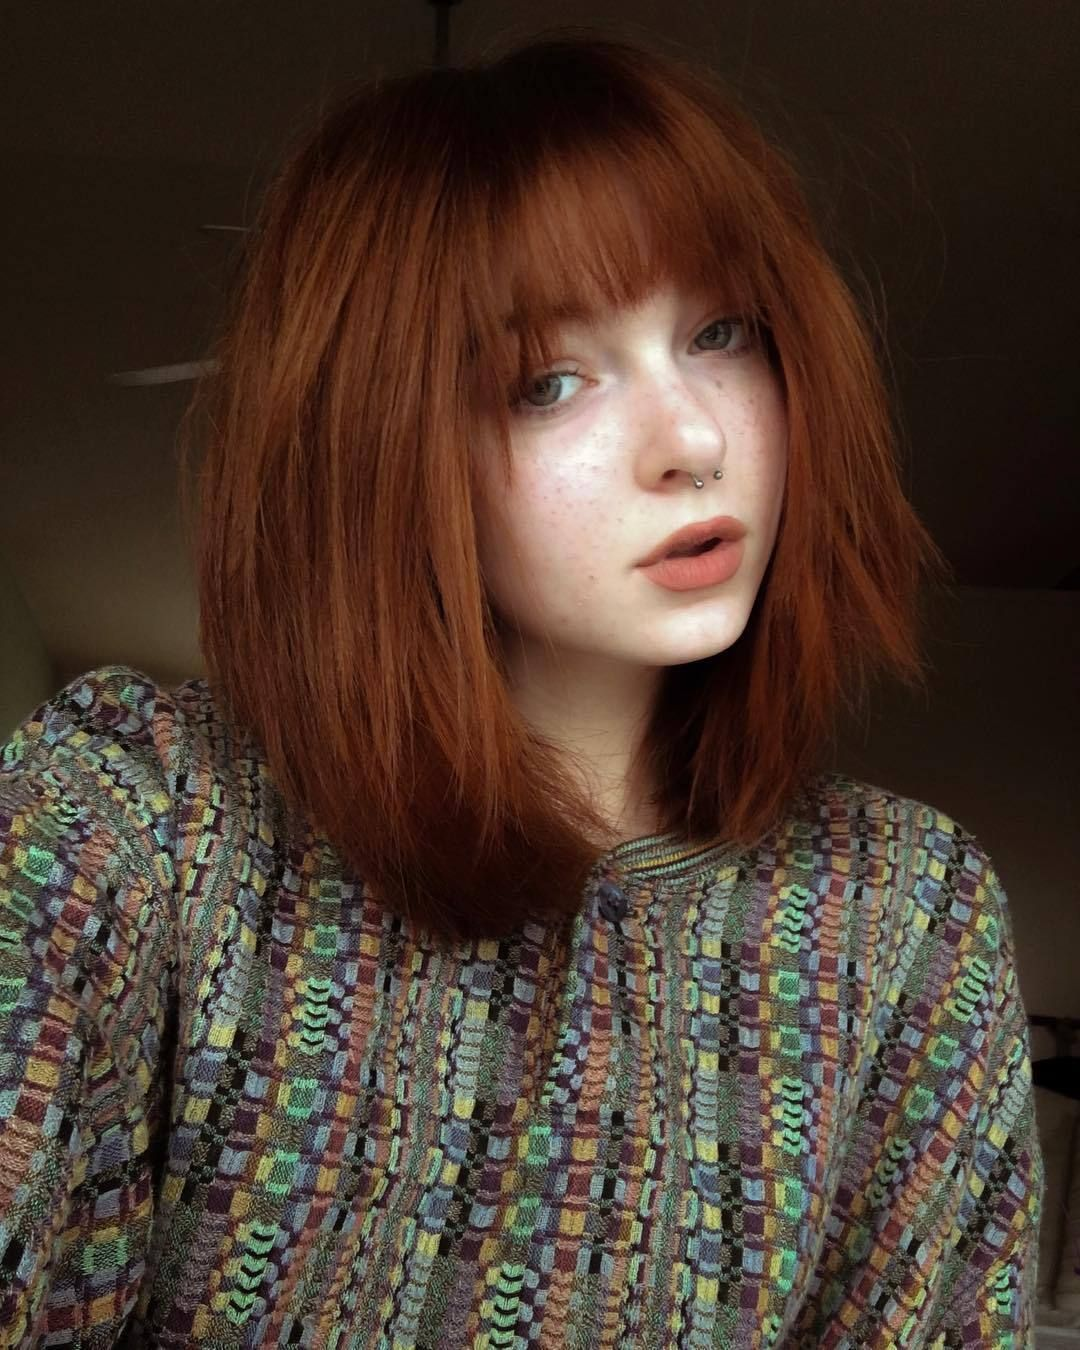 hallucineon more hairstyles on ig @colours_and_hair en 2020 | Maquillage pour rousse, Cheveux mi ...